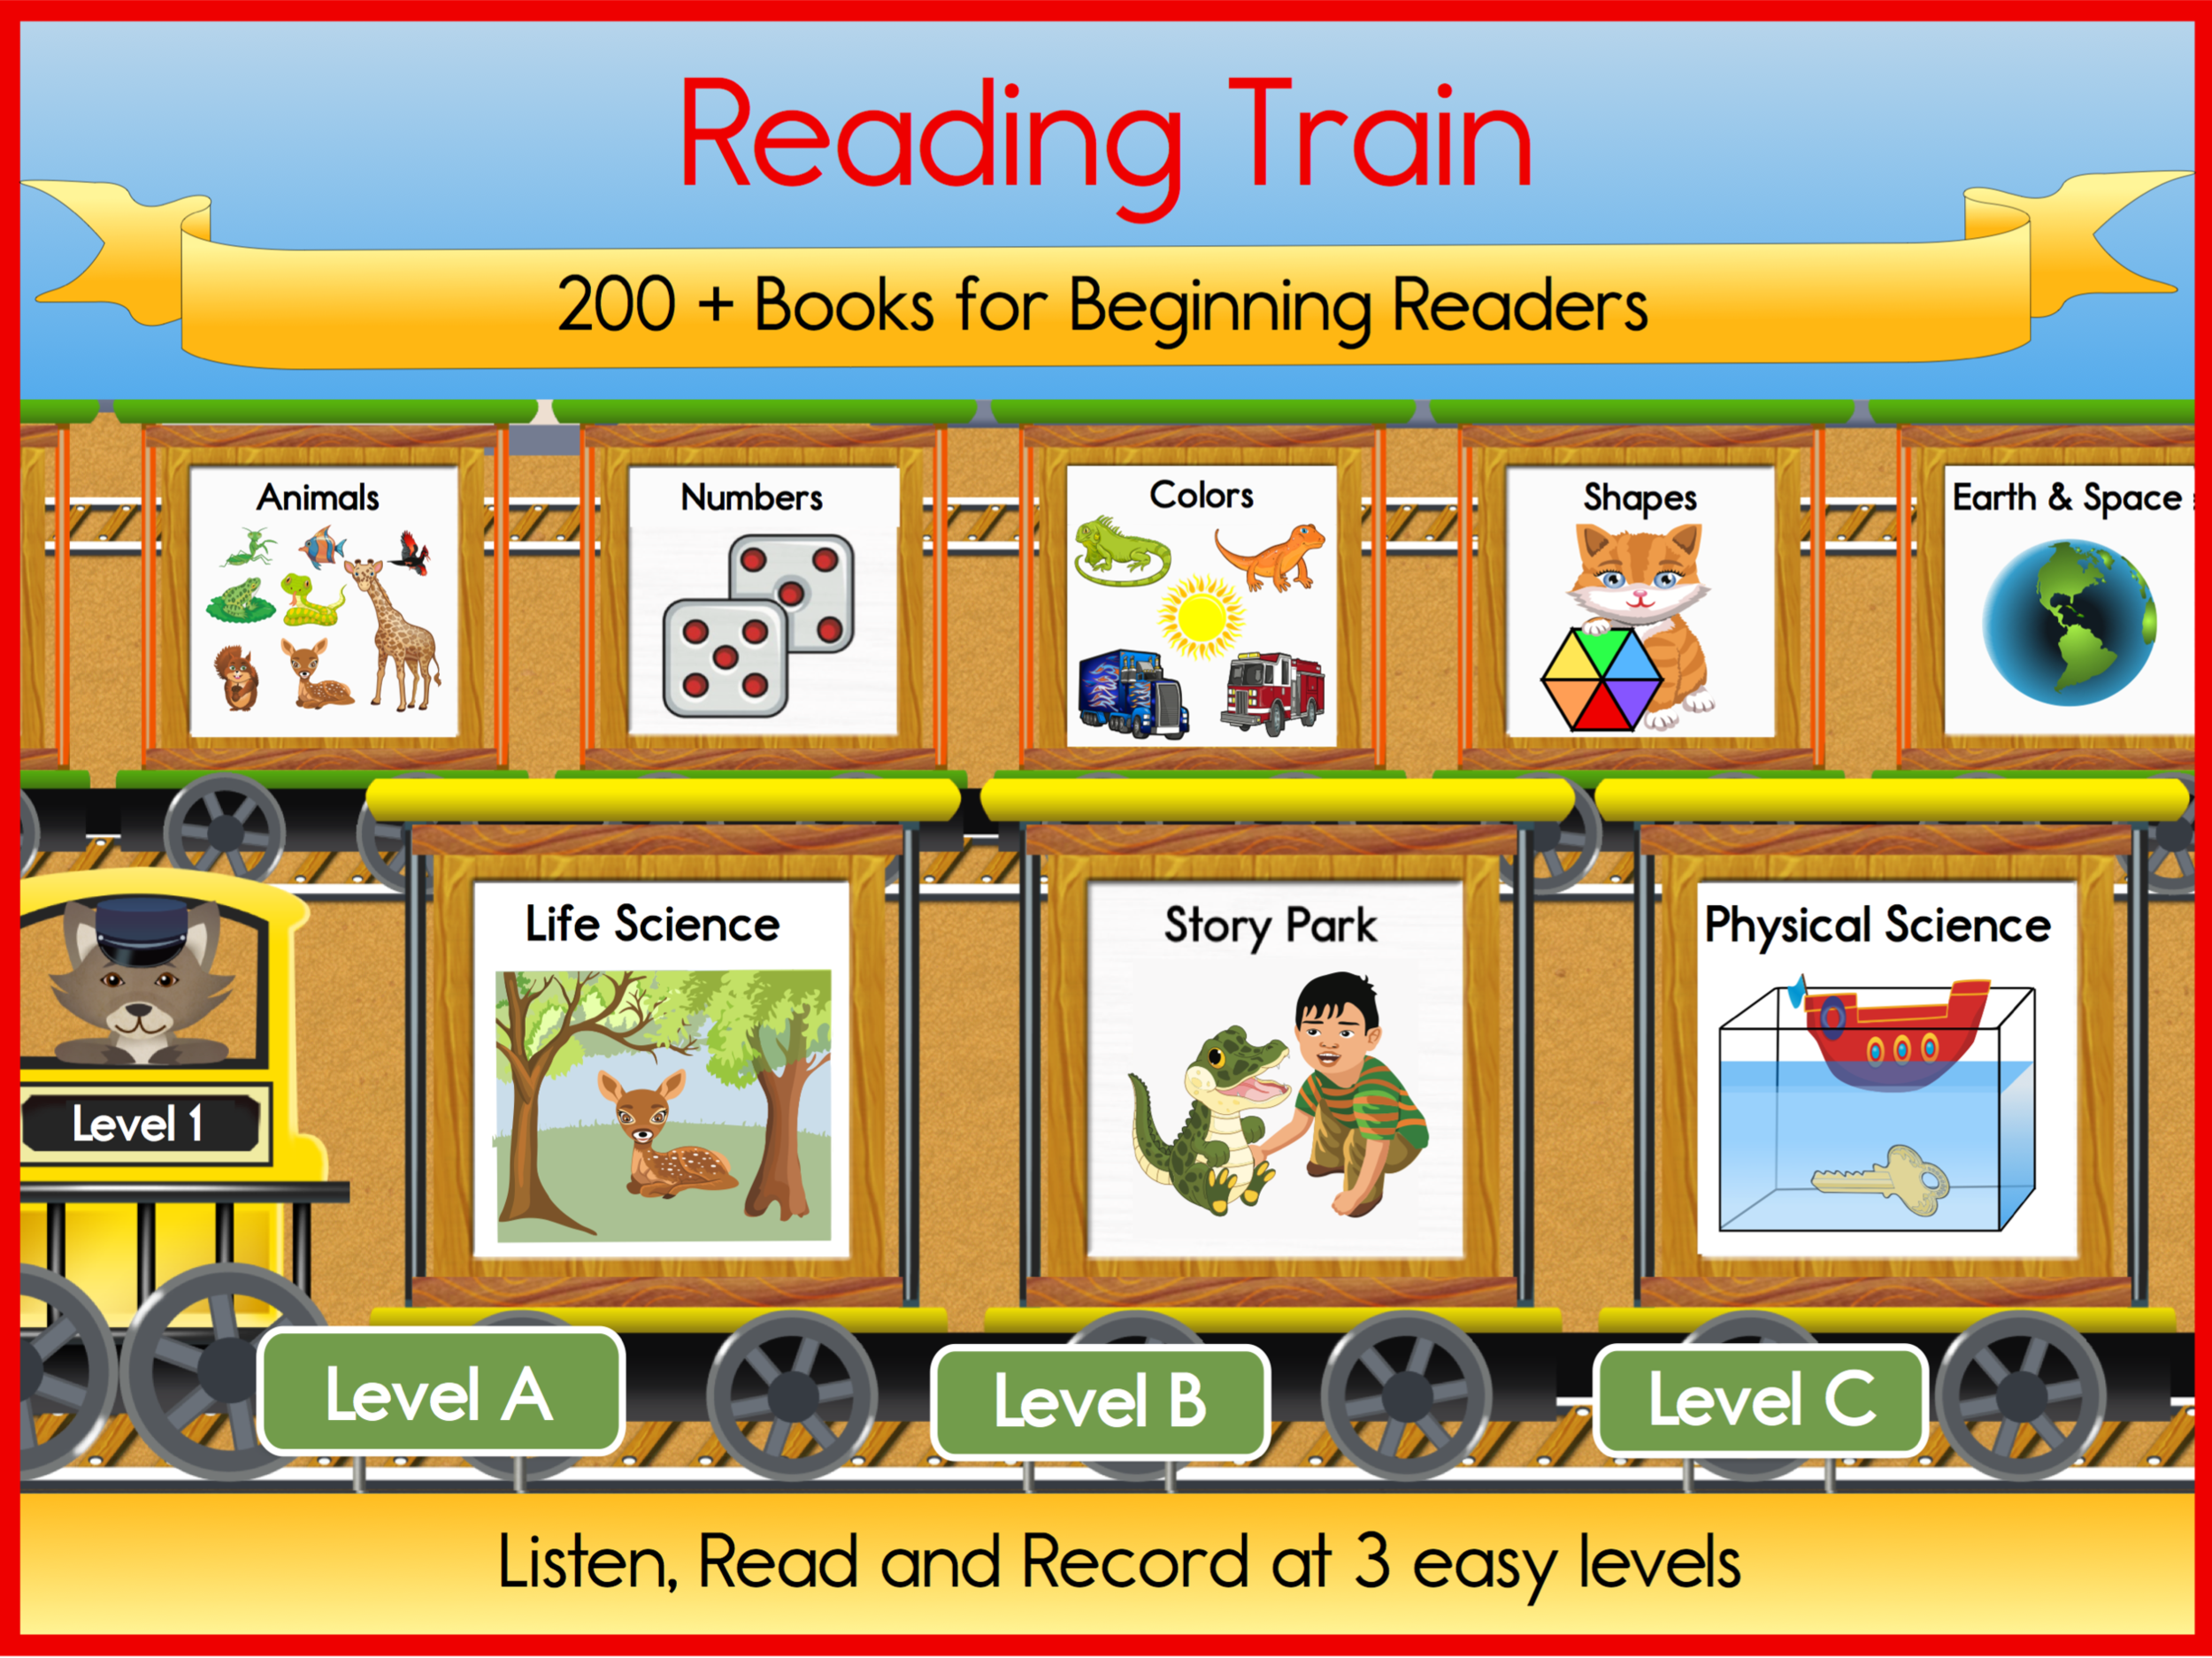 D  OWNLOAD  Reading Train Full STEAM Ahead on the Apple App Store       or  DOWNLOAD  on the  Google Play store